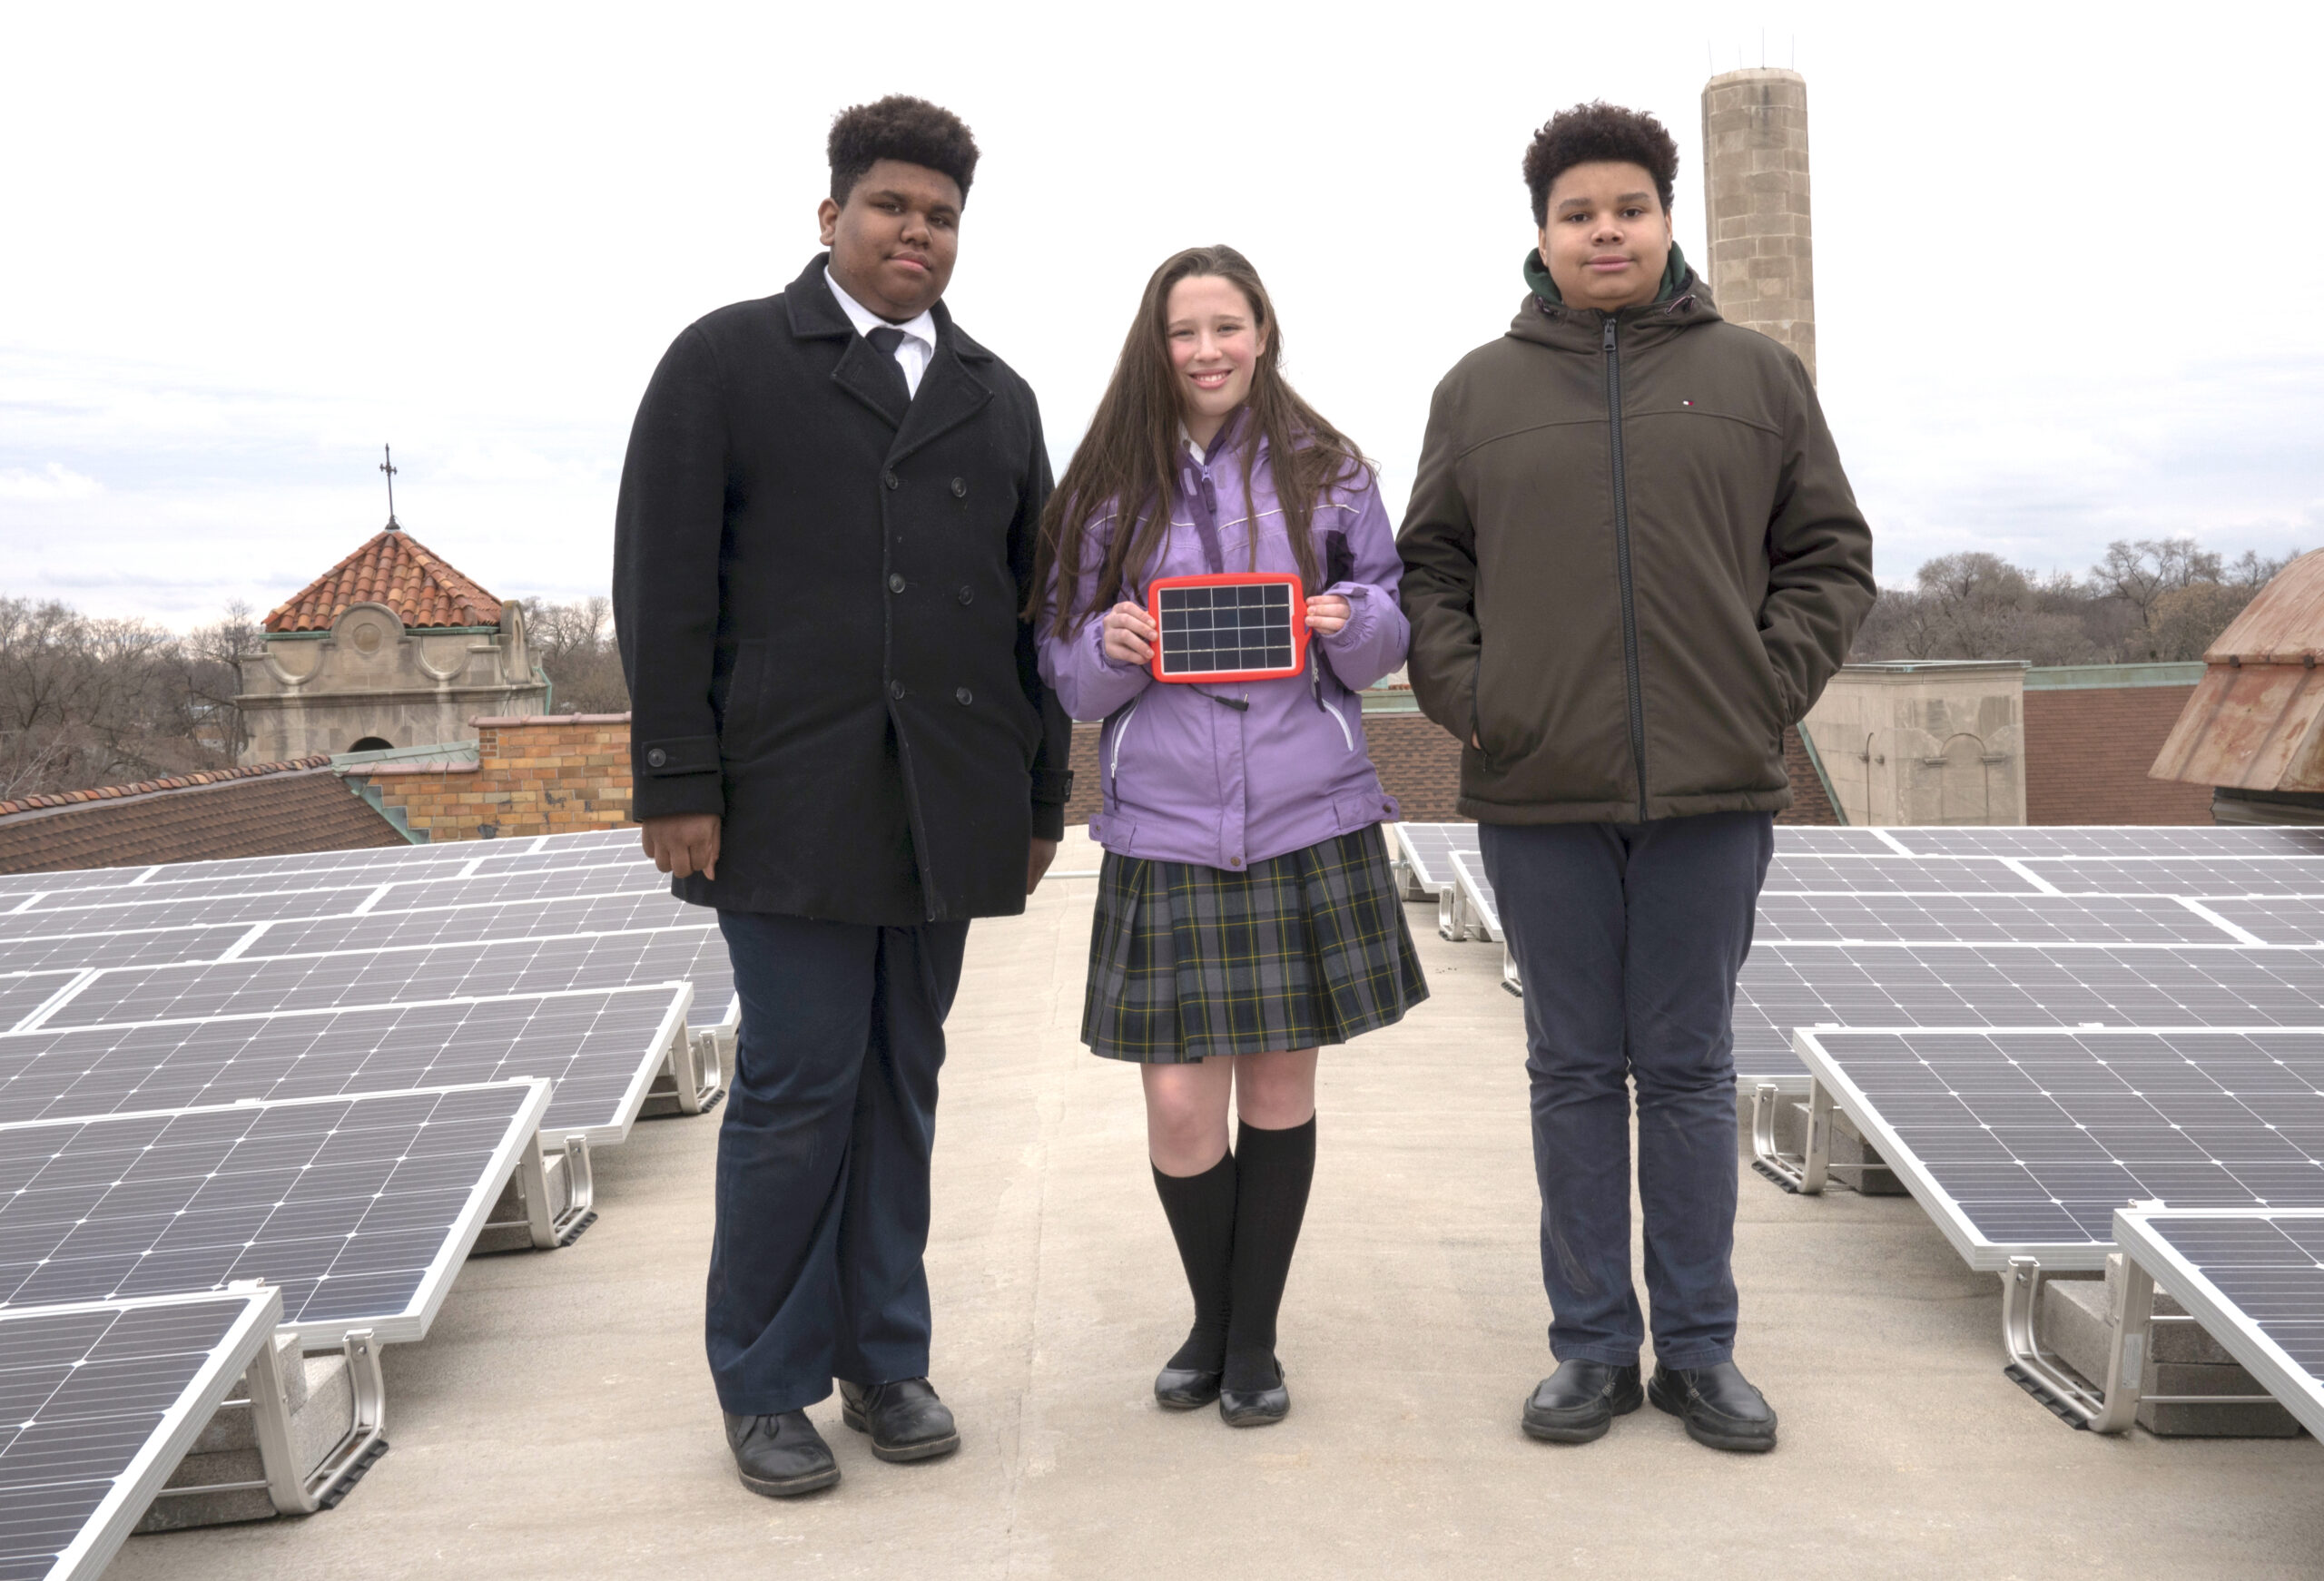 Nearly 6K Michigan residents support rooftop solar expansion